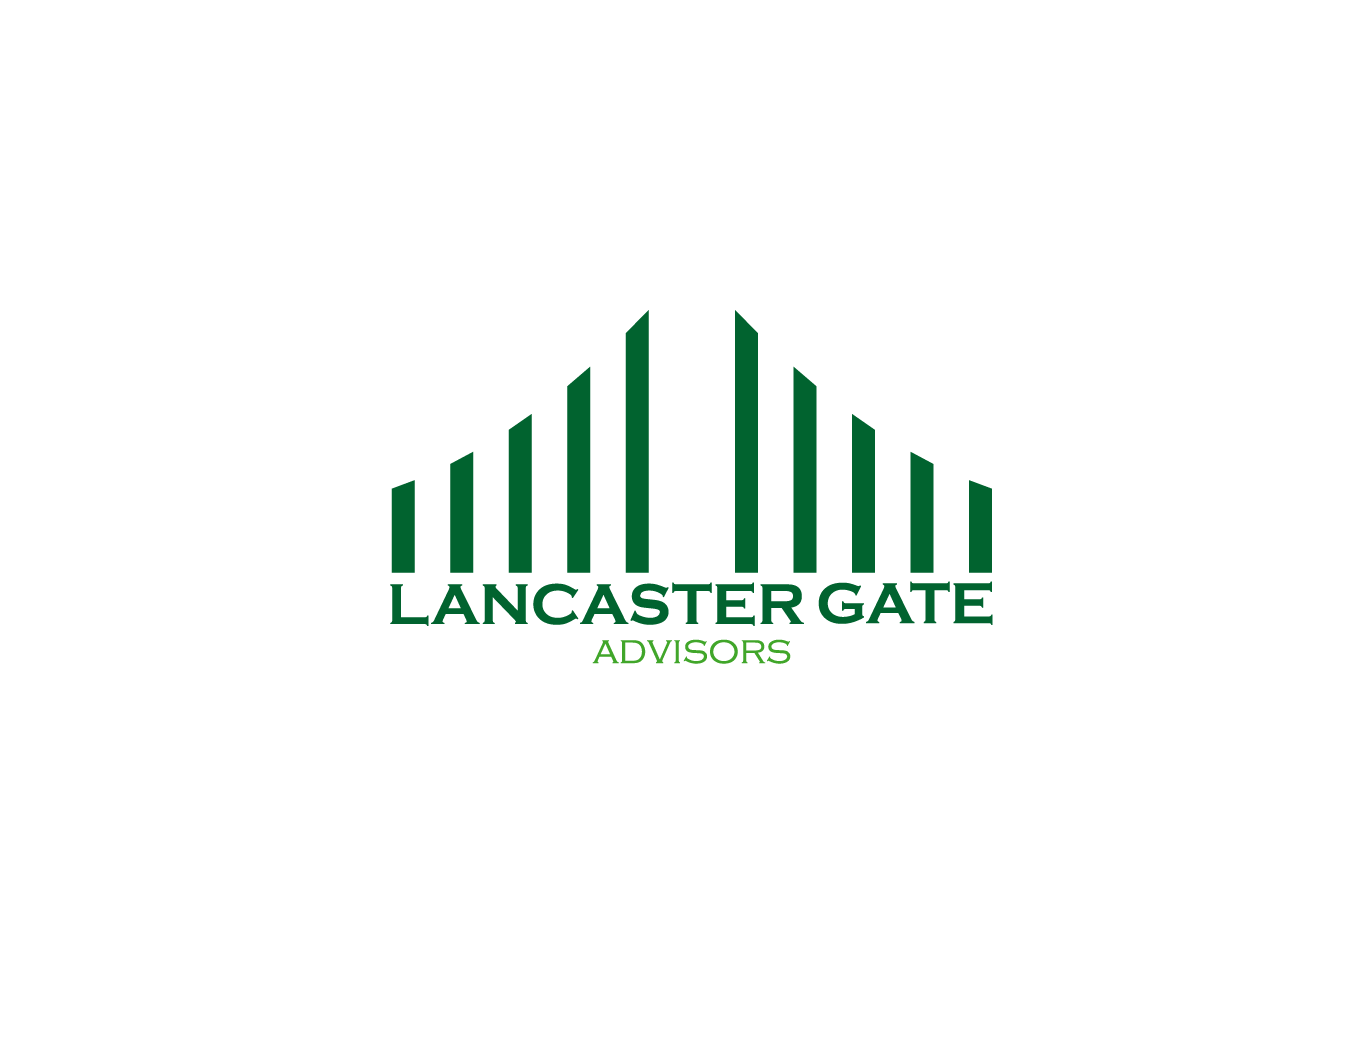 logo design for lancaster gate advisors by jika design